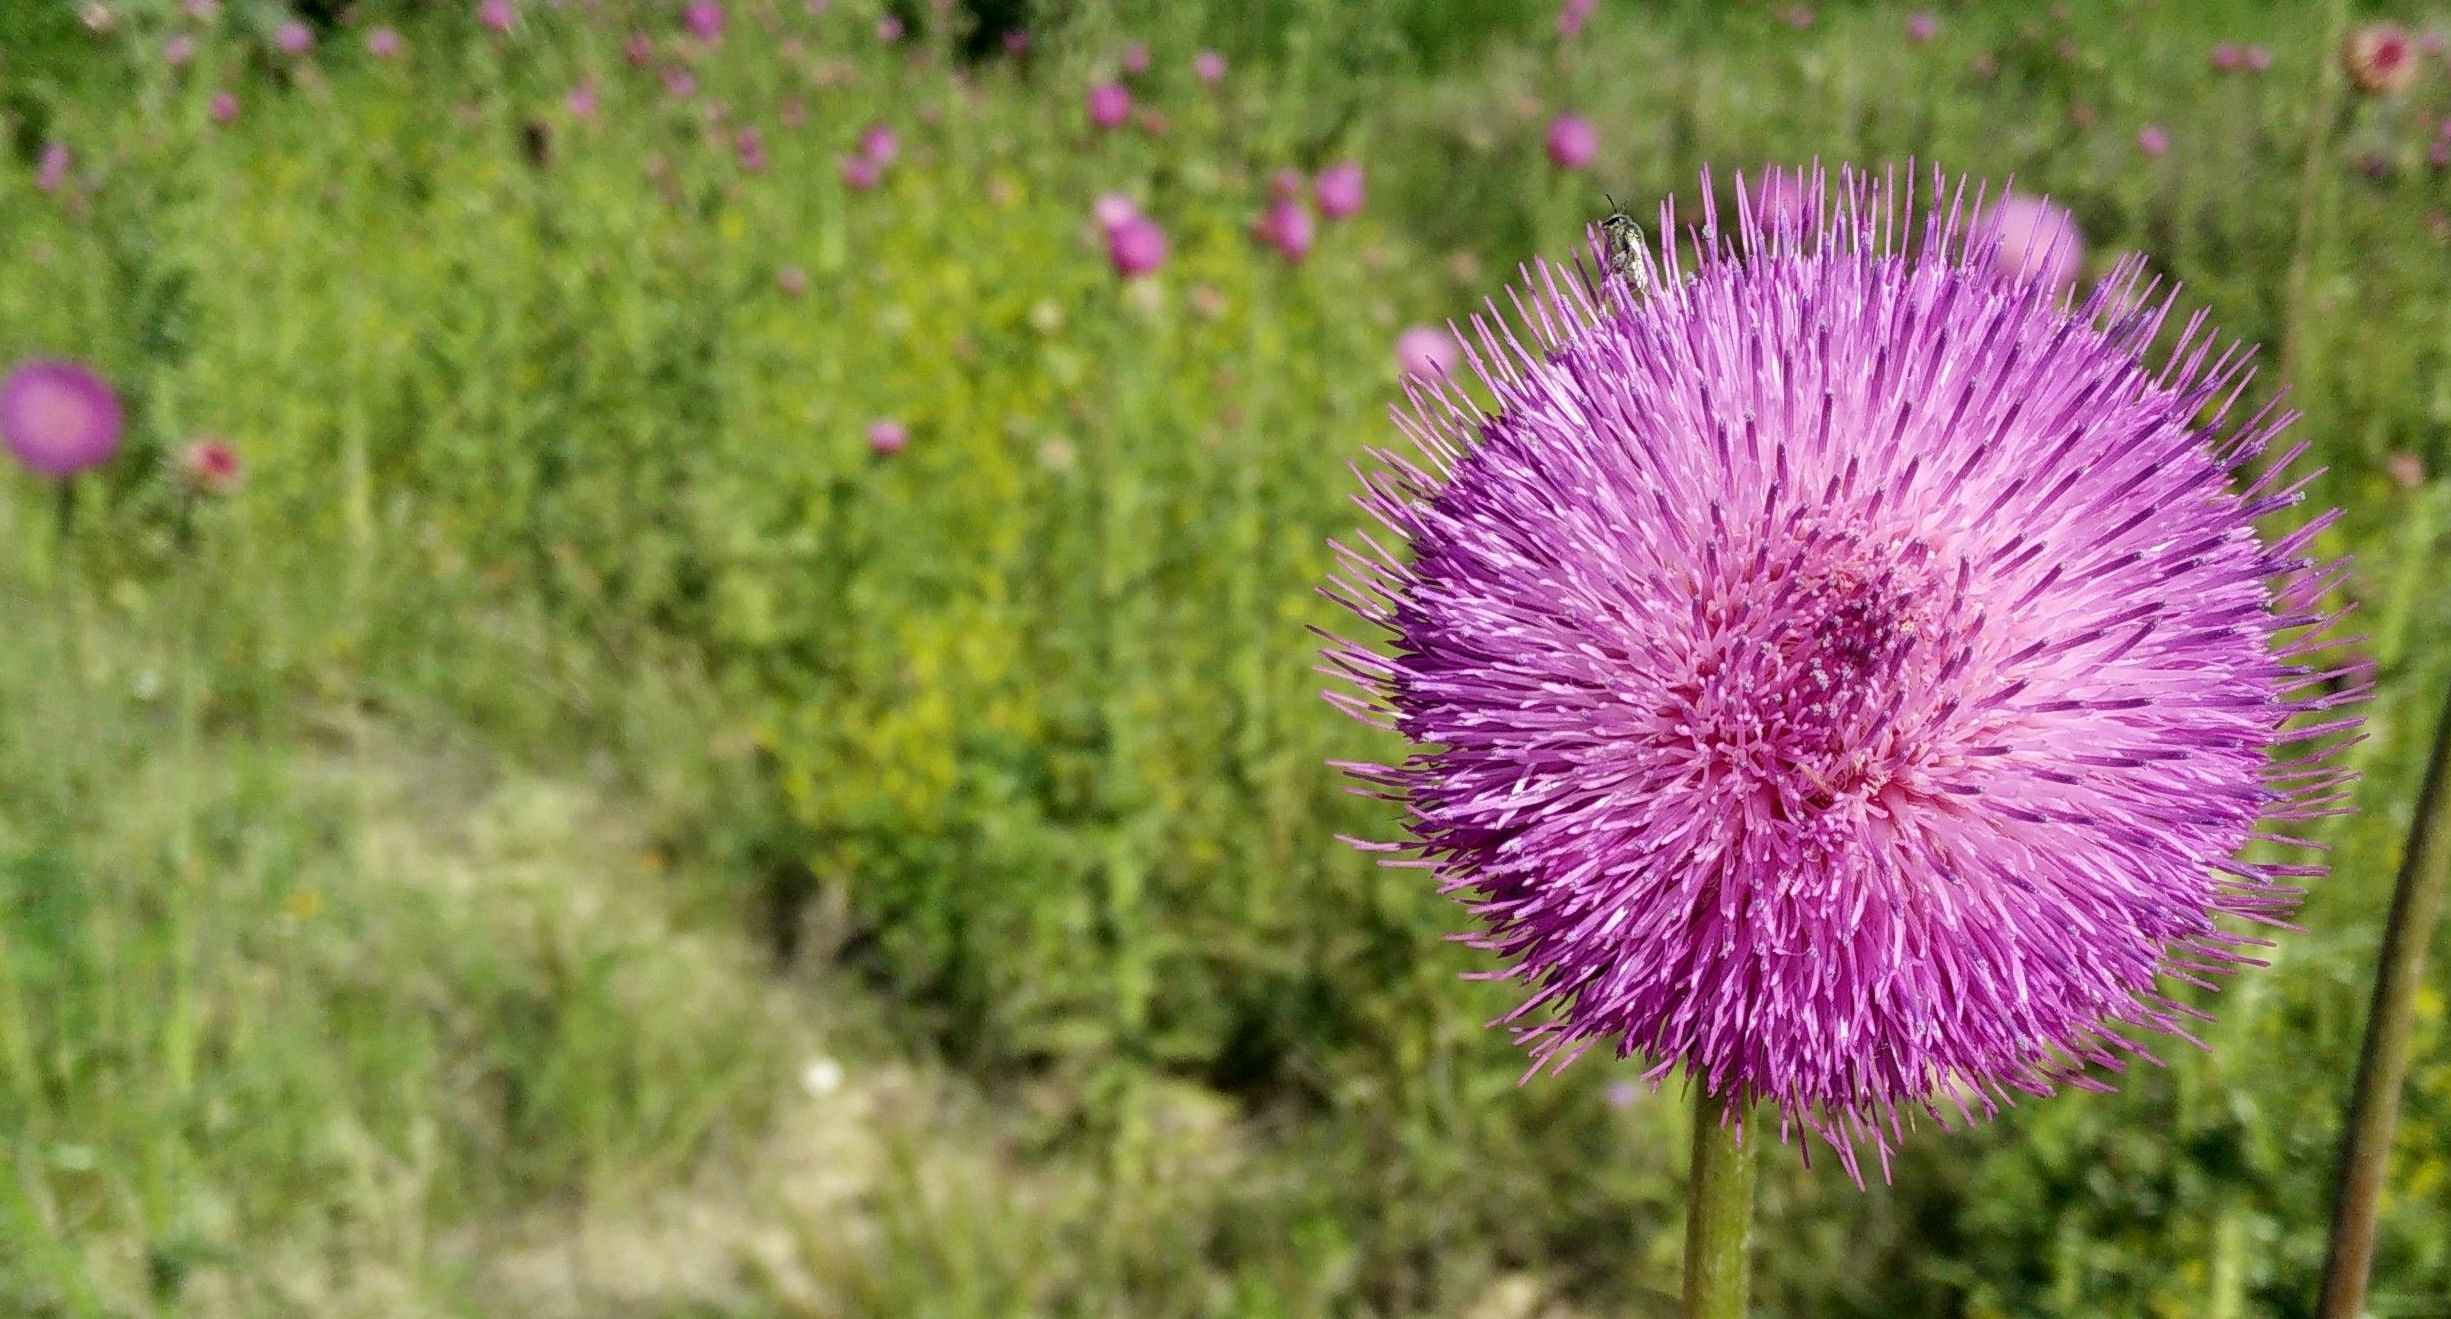 Close-up of a thistle flower in full bloom